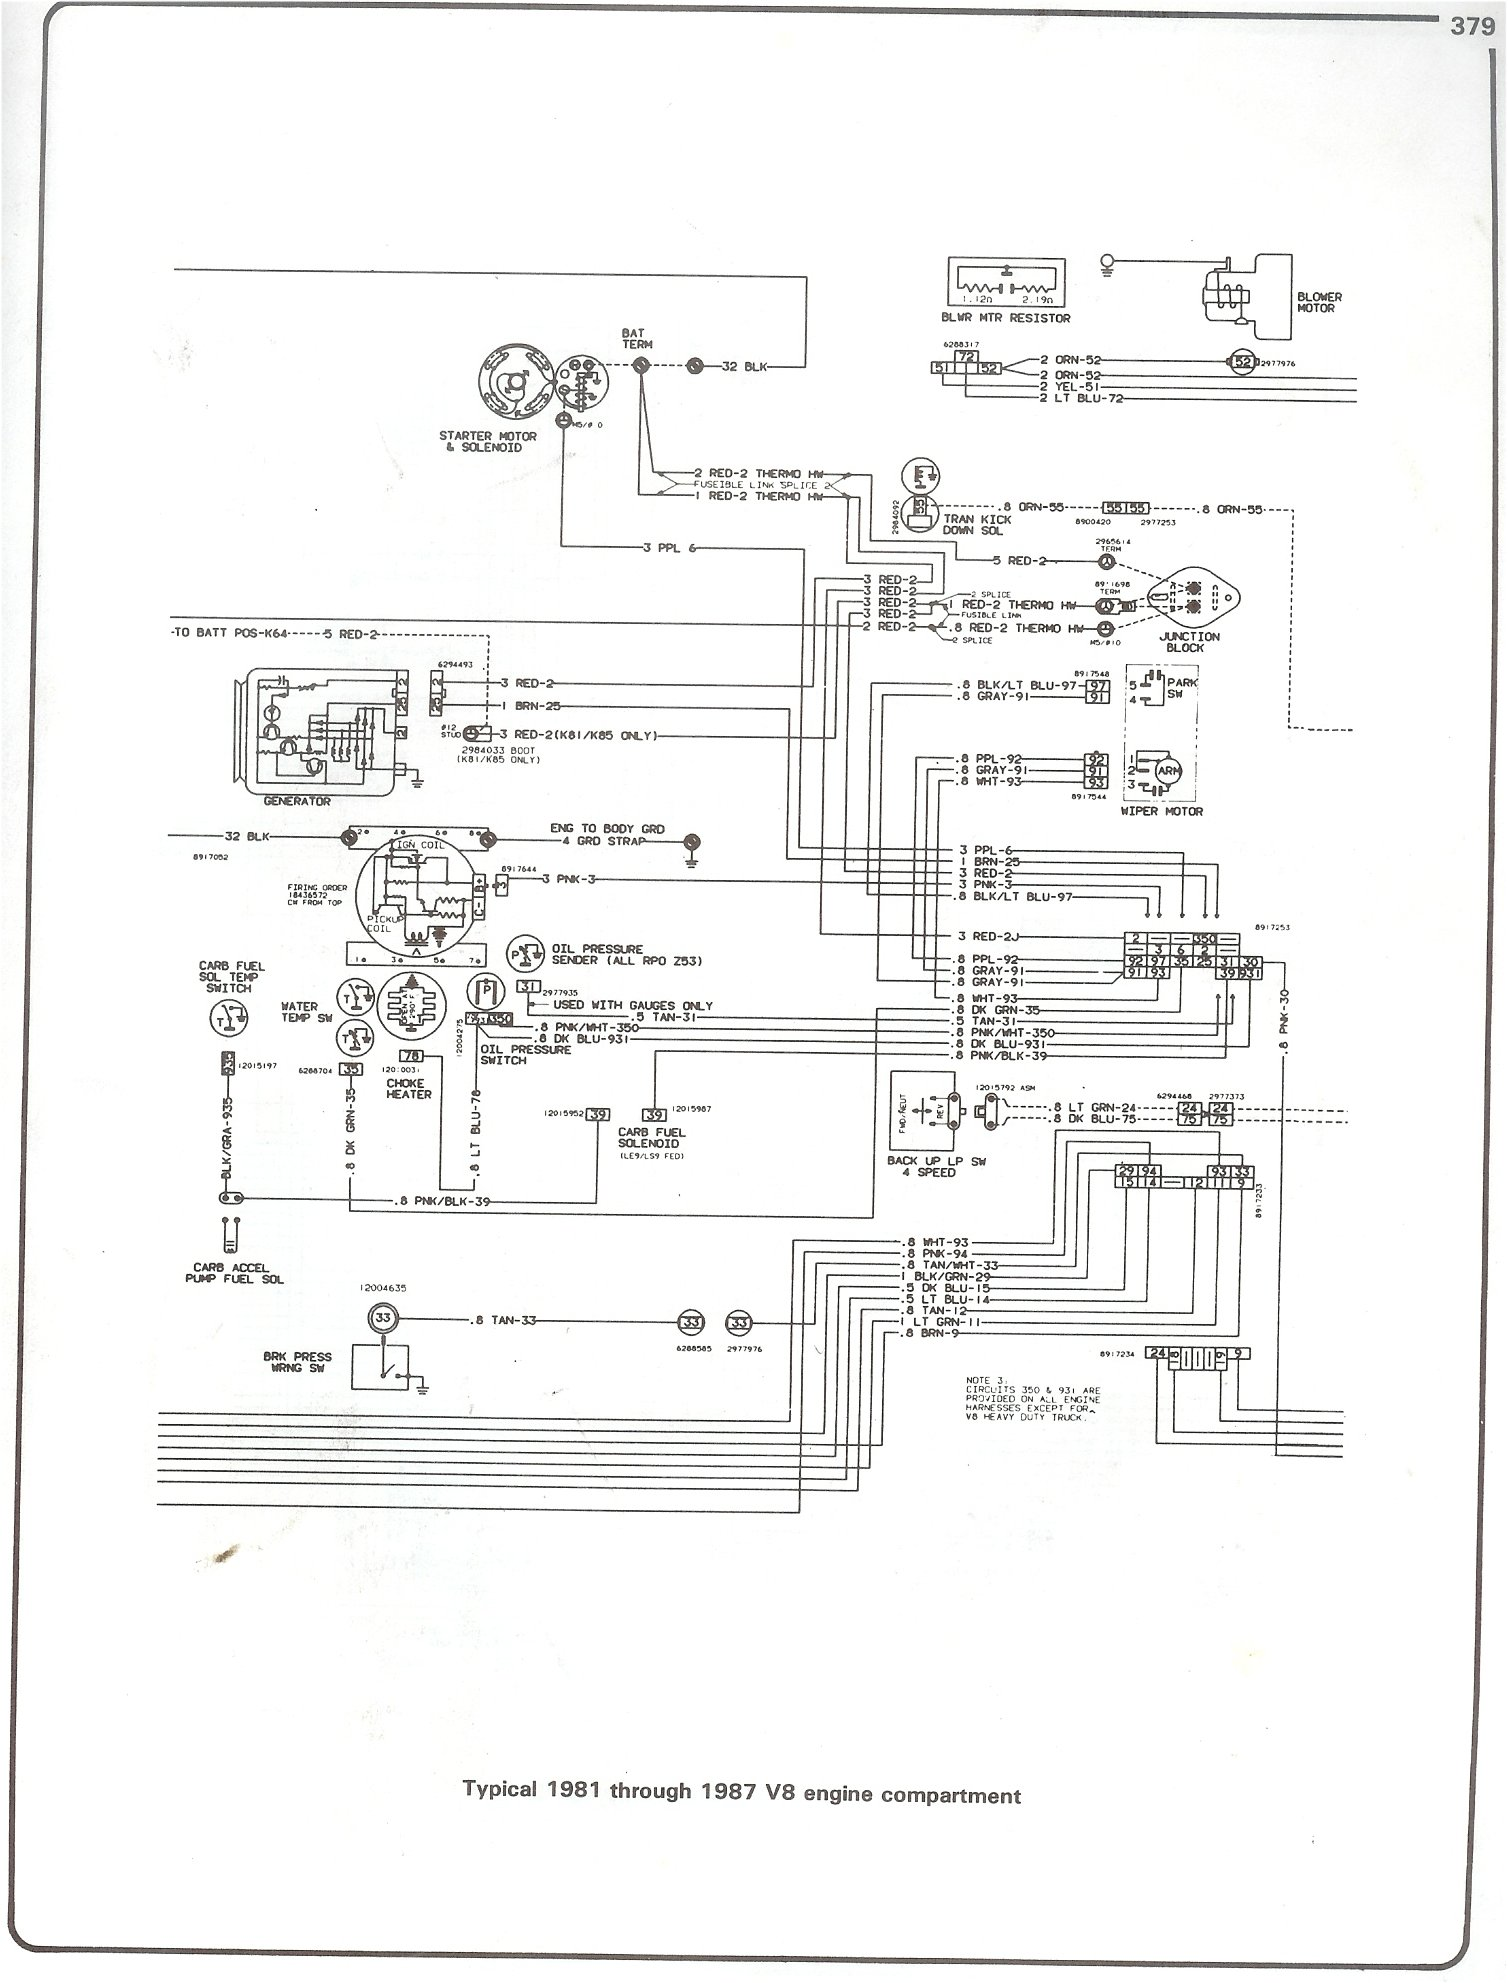 1987 Chevy Truck Wiring Diagram: Complete 73-87 Wiring Diagrams,Design